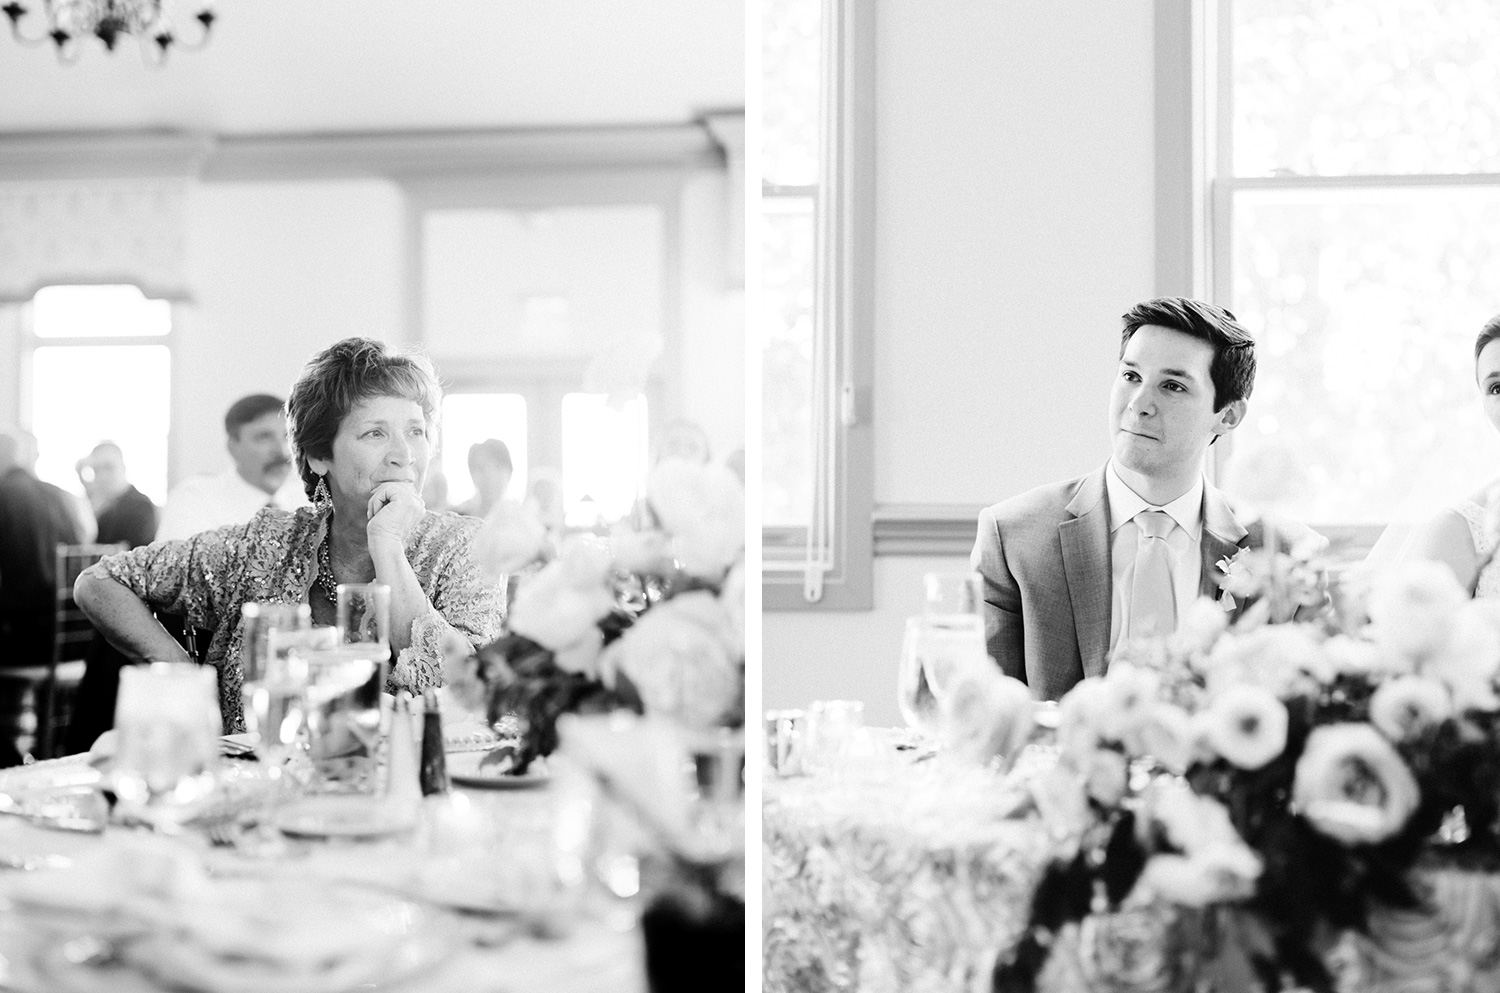 A groom tears up as his mother looks on during the toasts at a Polo Fields wedding reception in Ann Arbor